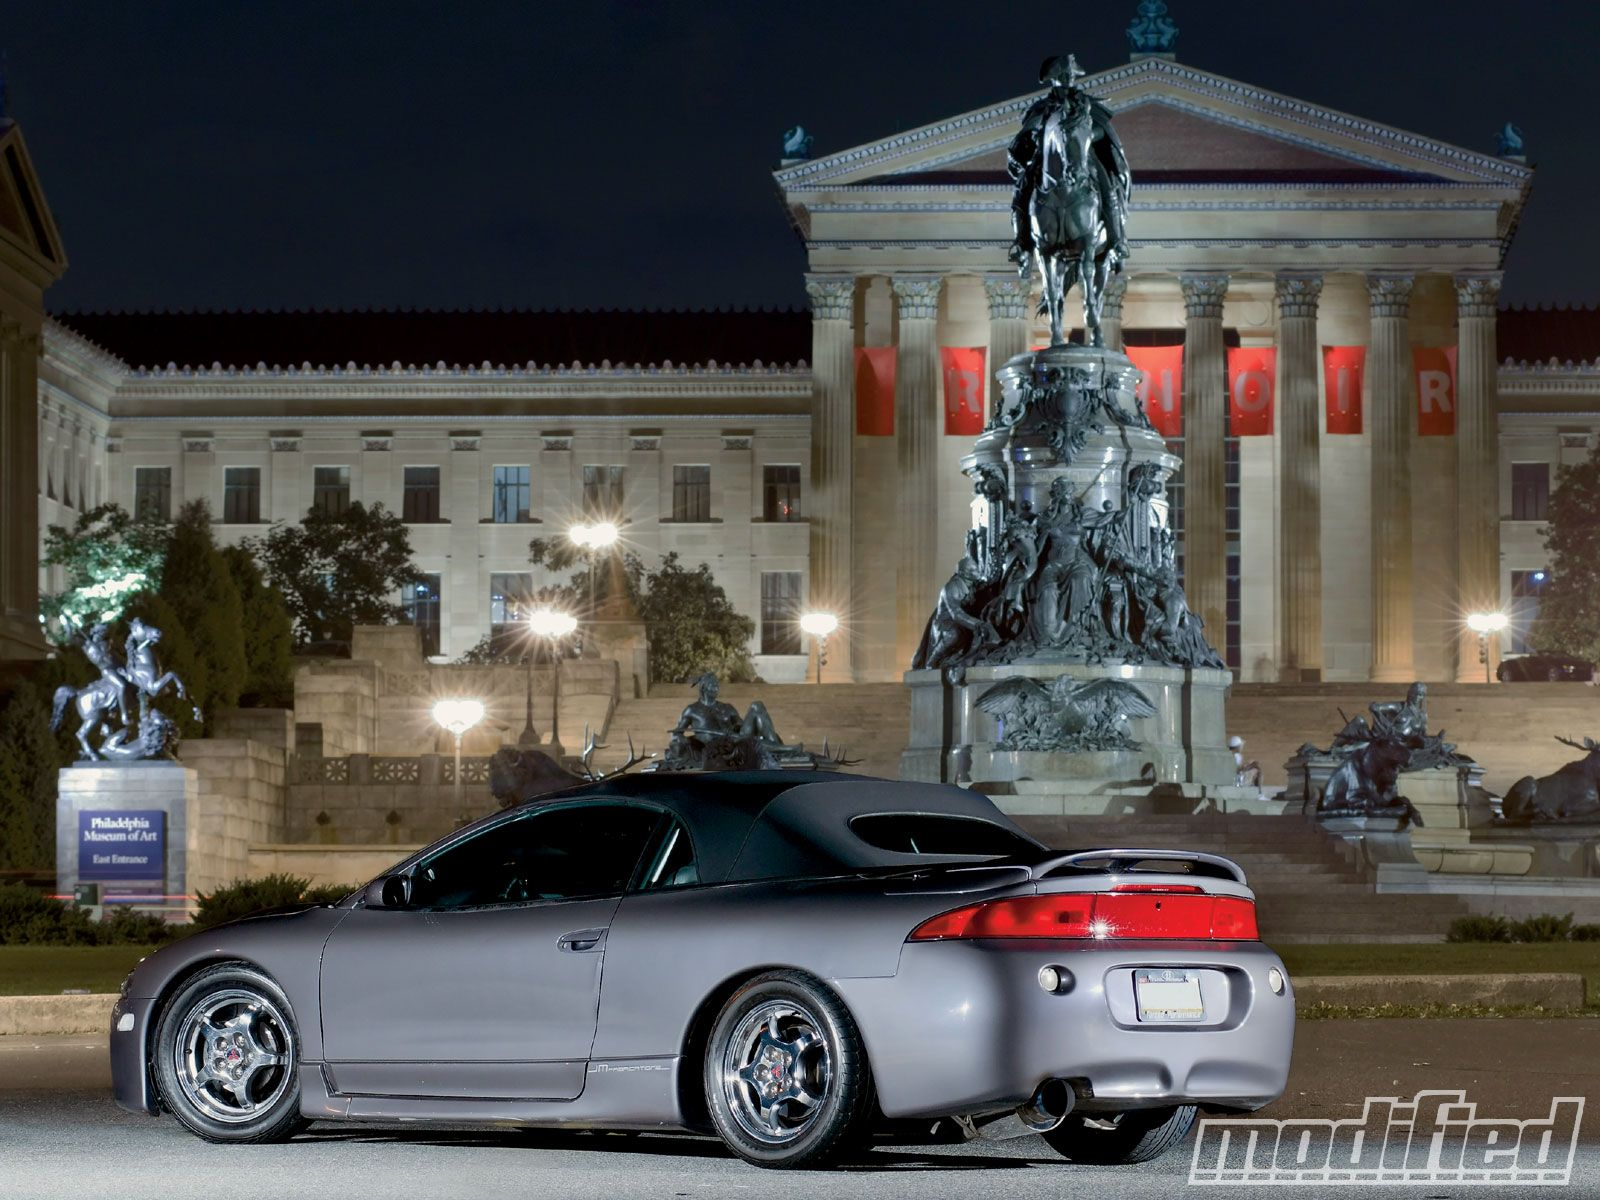 Pictures of mitsubishi eclipse ii (d3_) 1997 #2